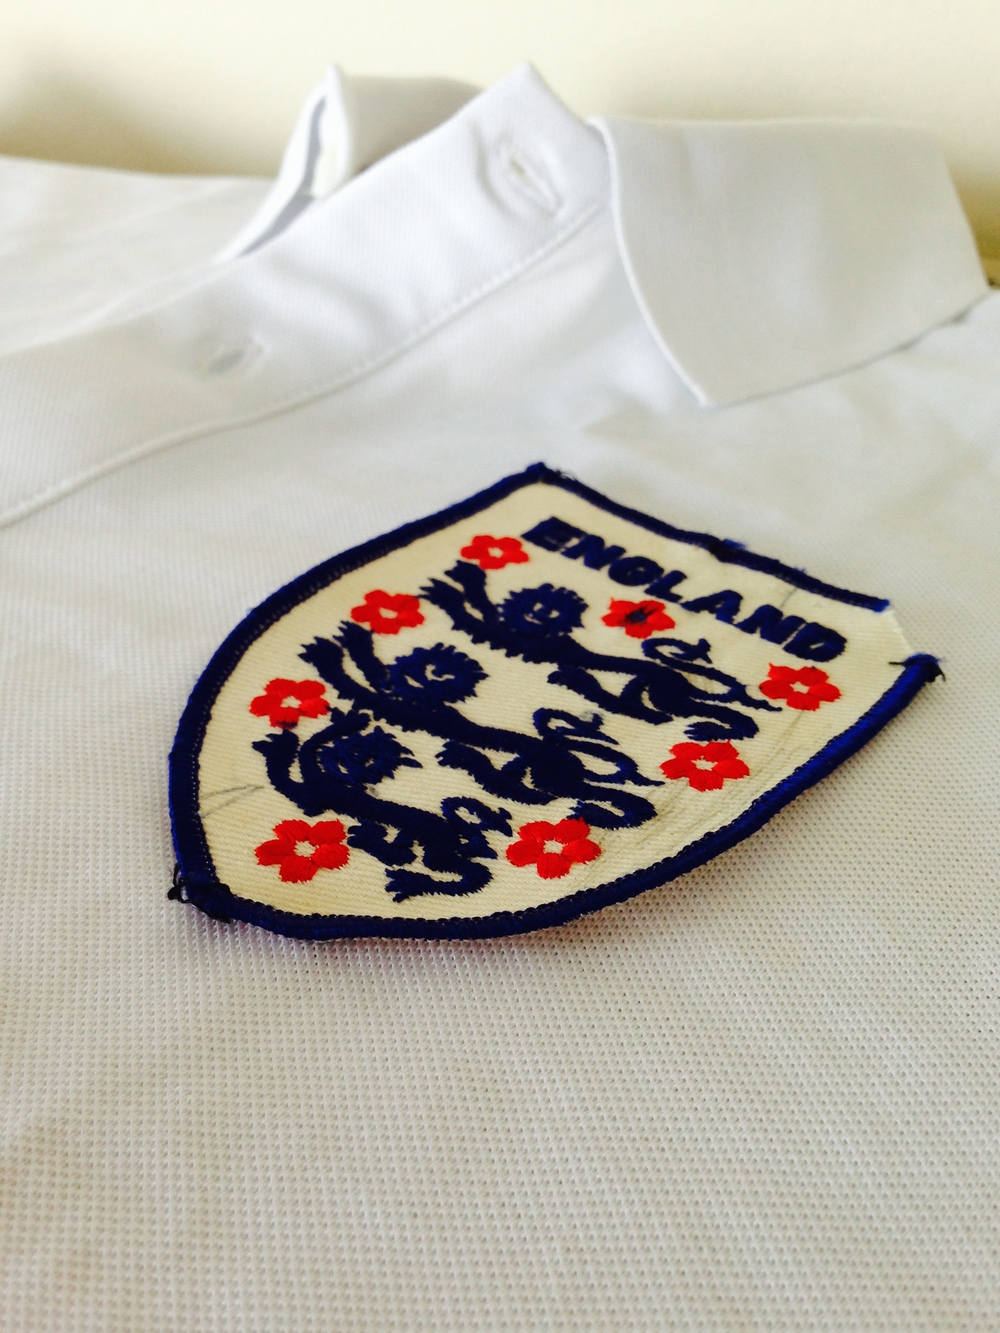 A battered old badge transforms this polo into supporter gold.